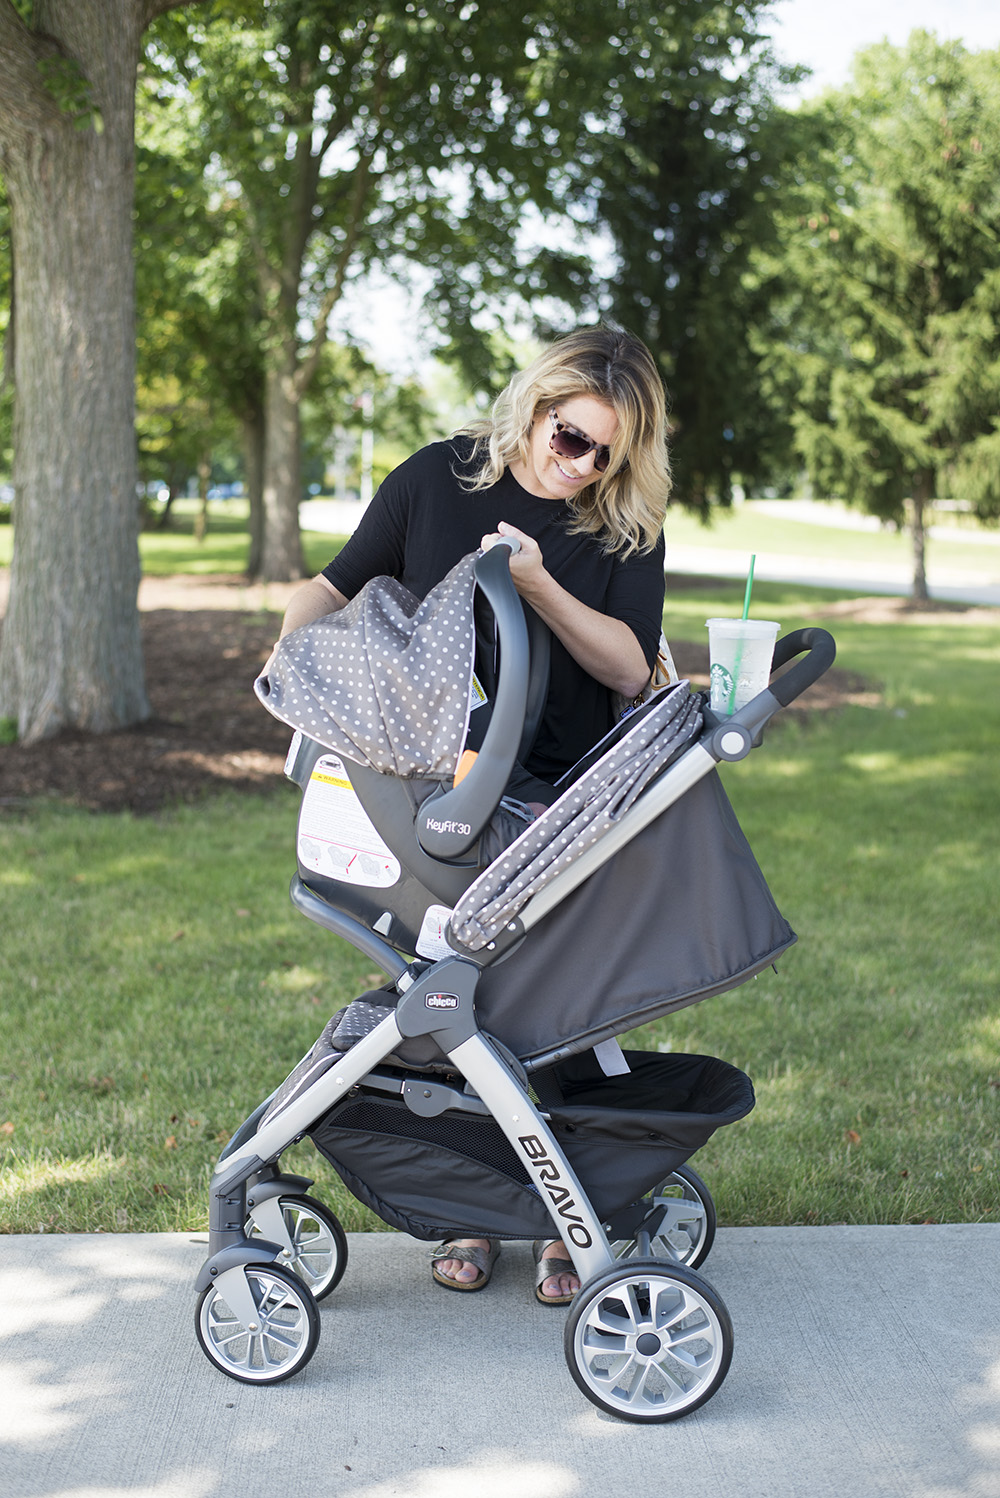 The best lightweight travel system by Chicco.